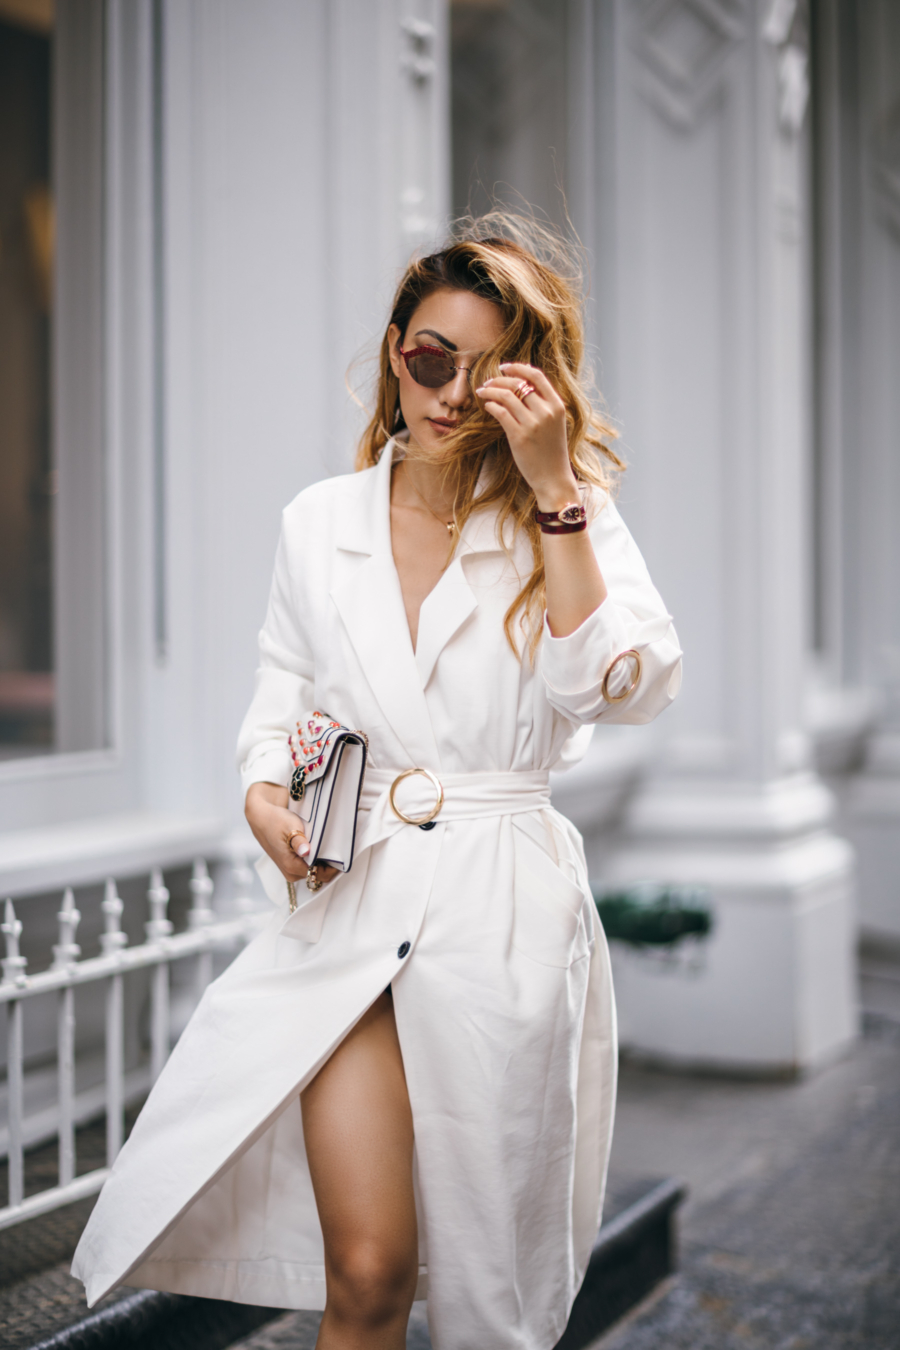 White Trench Coat Dress and Bulgari Serpenti Collection - One Serpenti Watch, Three Outfits // NotJessFashion.com